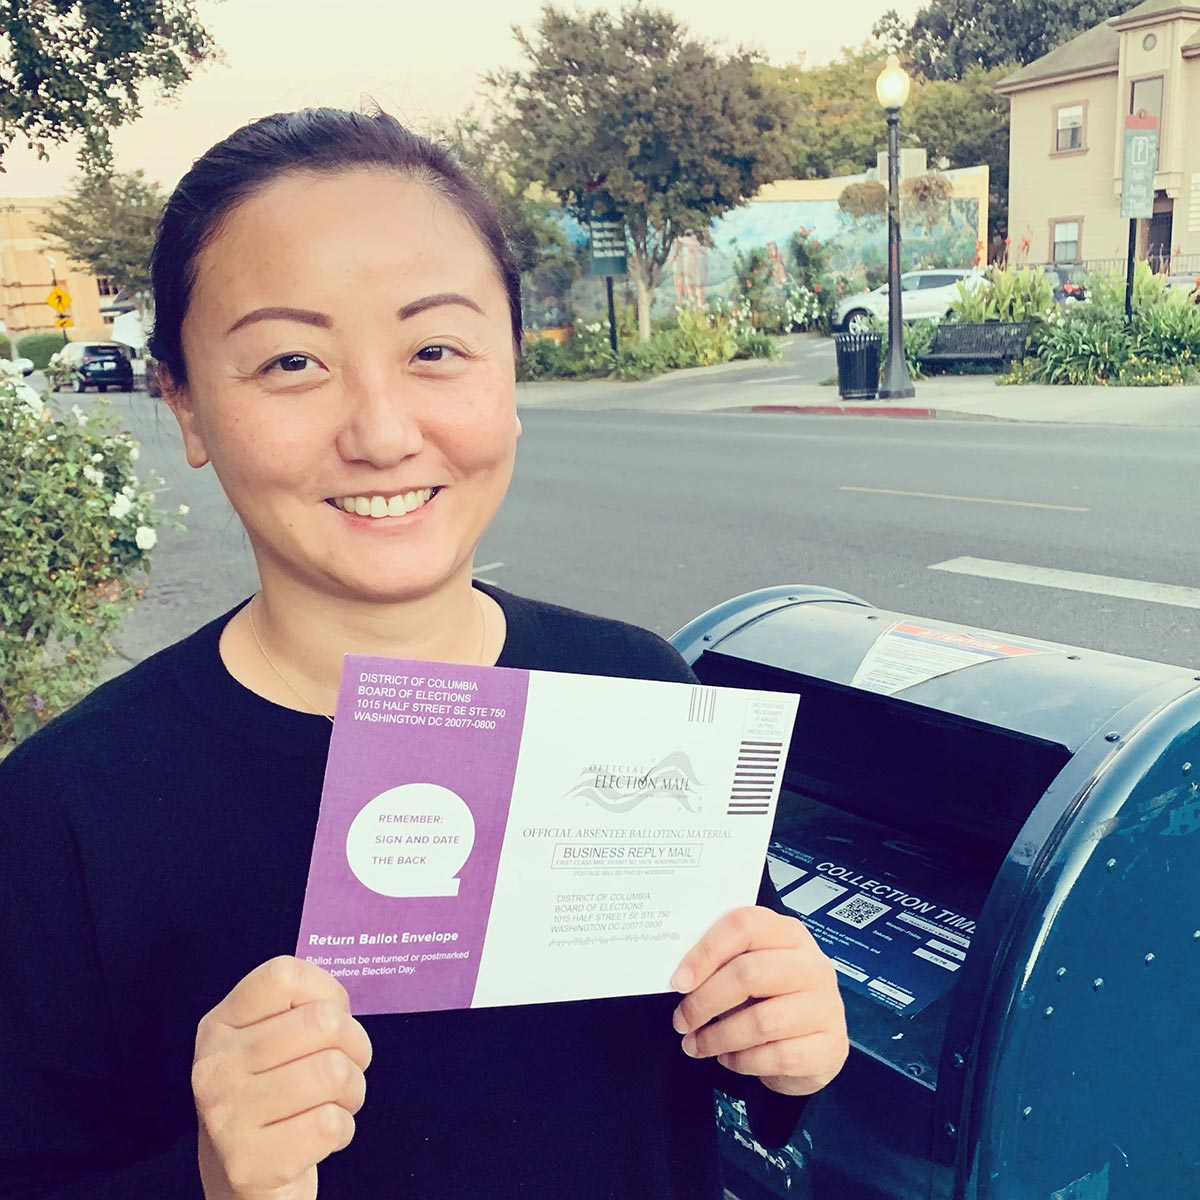 Yi Chen holding up a mail-in ballot in front of a USPS mailbox.